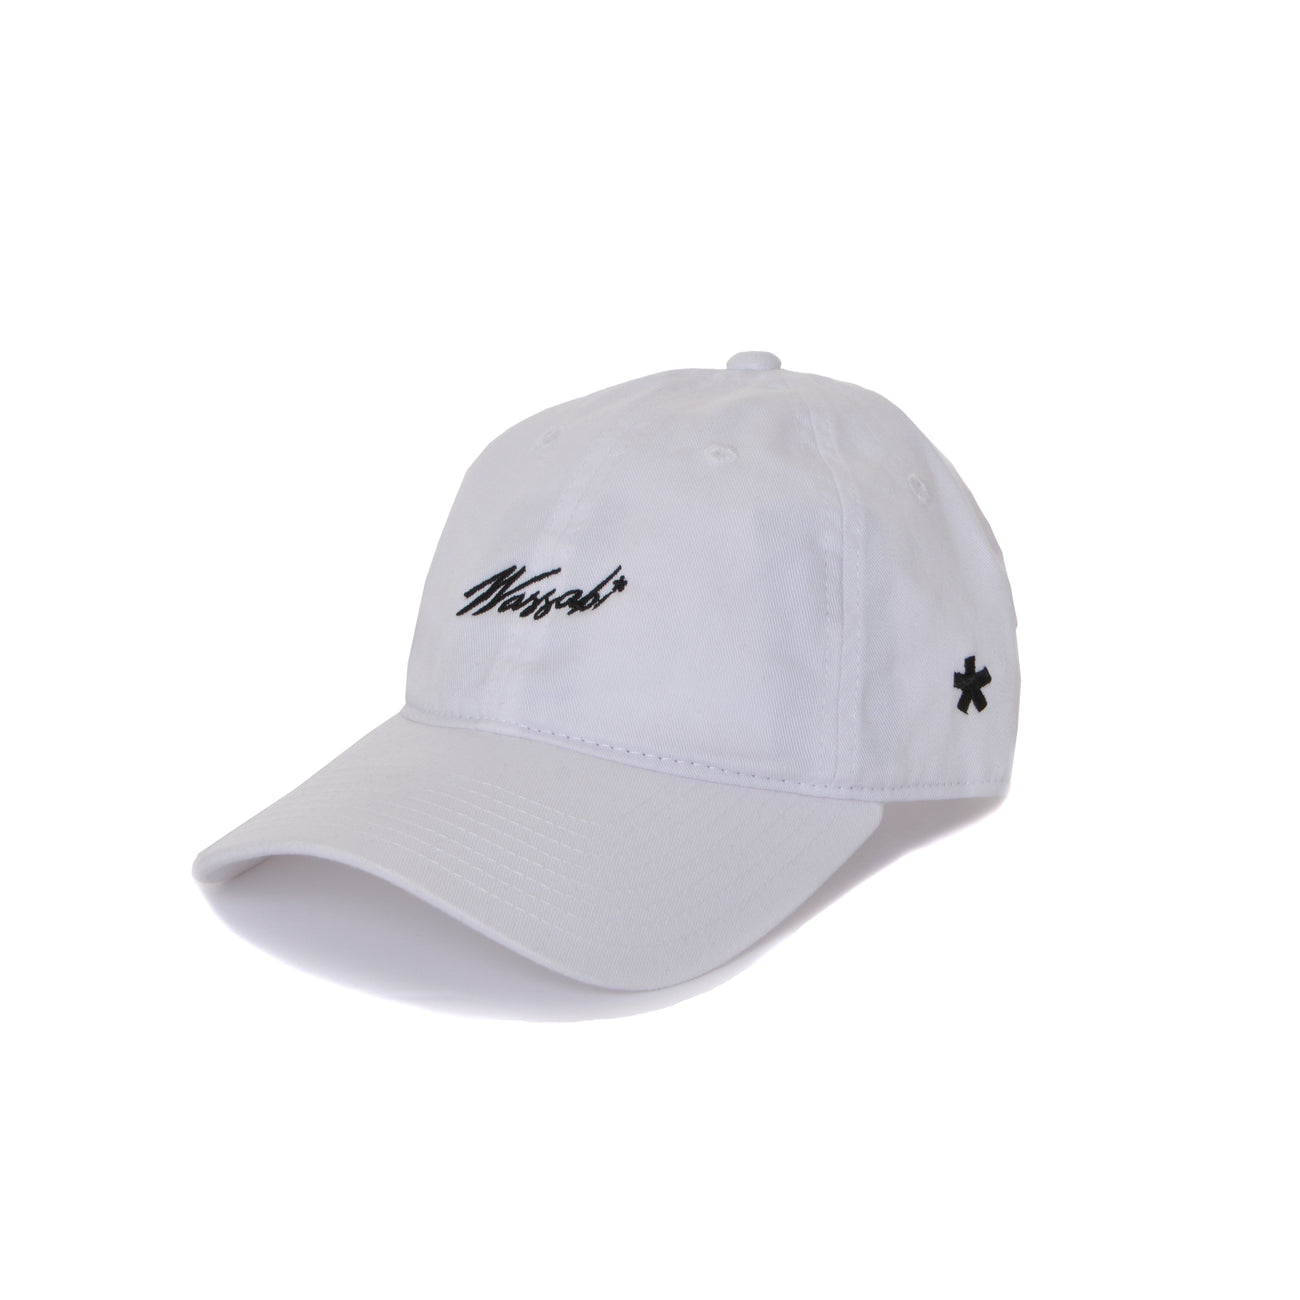 Wassabi Dad Hats - White